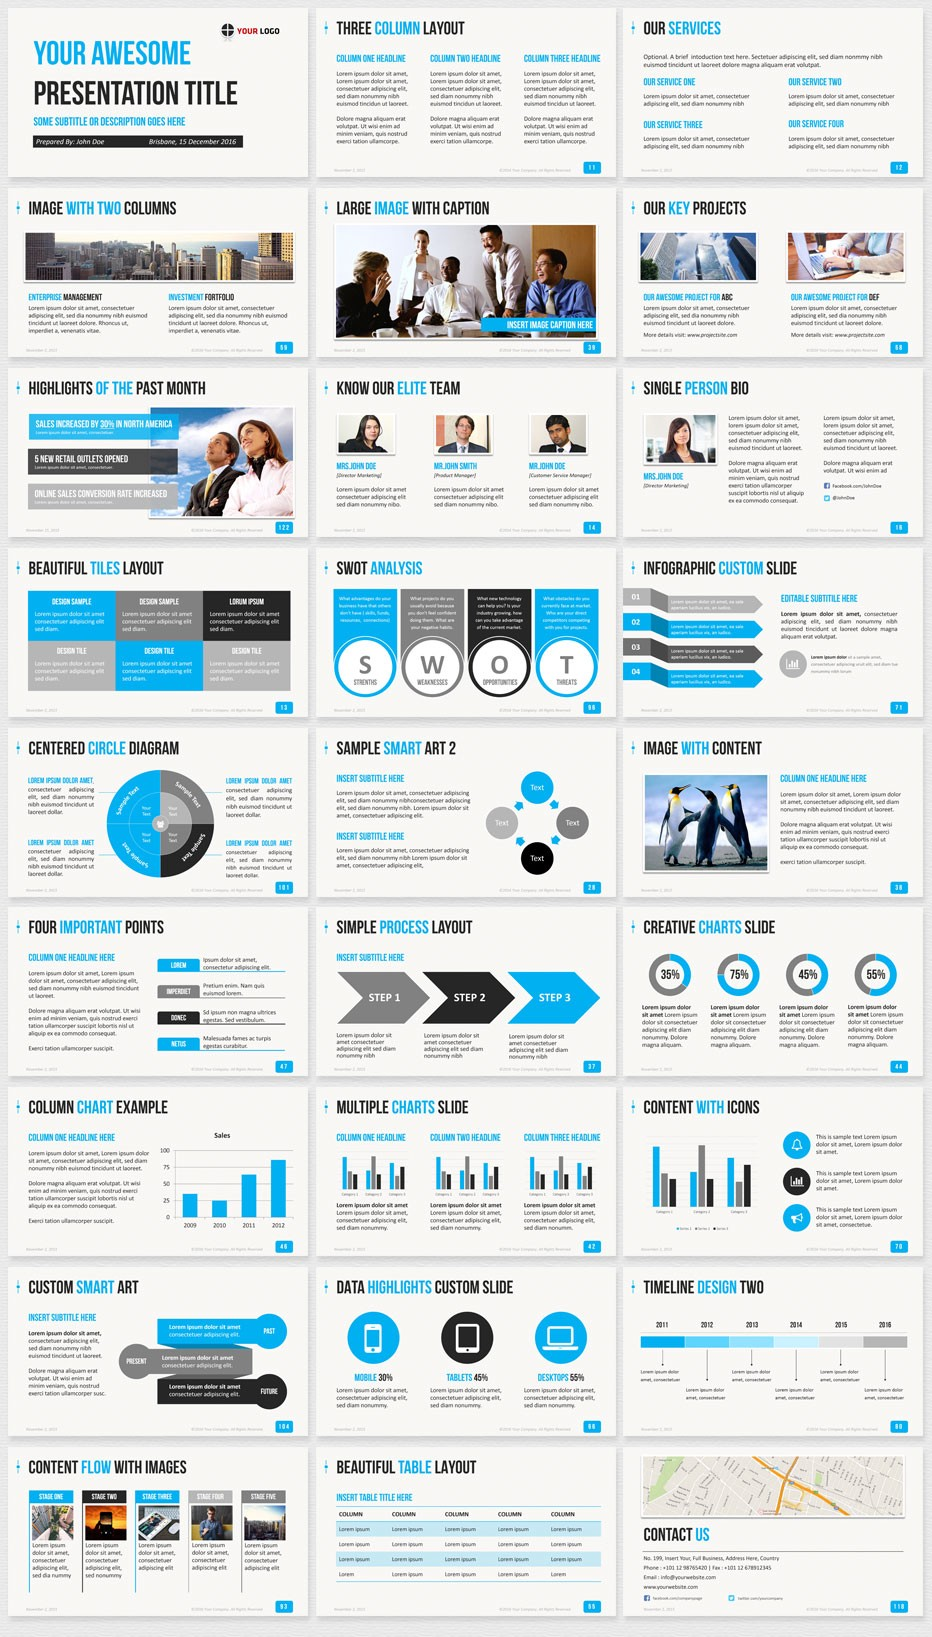 professional presentation templates or free powerpoint themes — what, How To Make A Powerpoint Presentation Template, Presentation templates